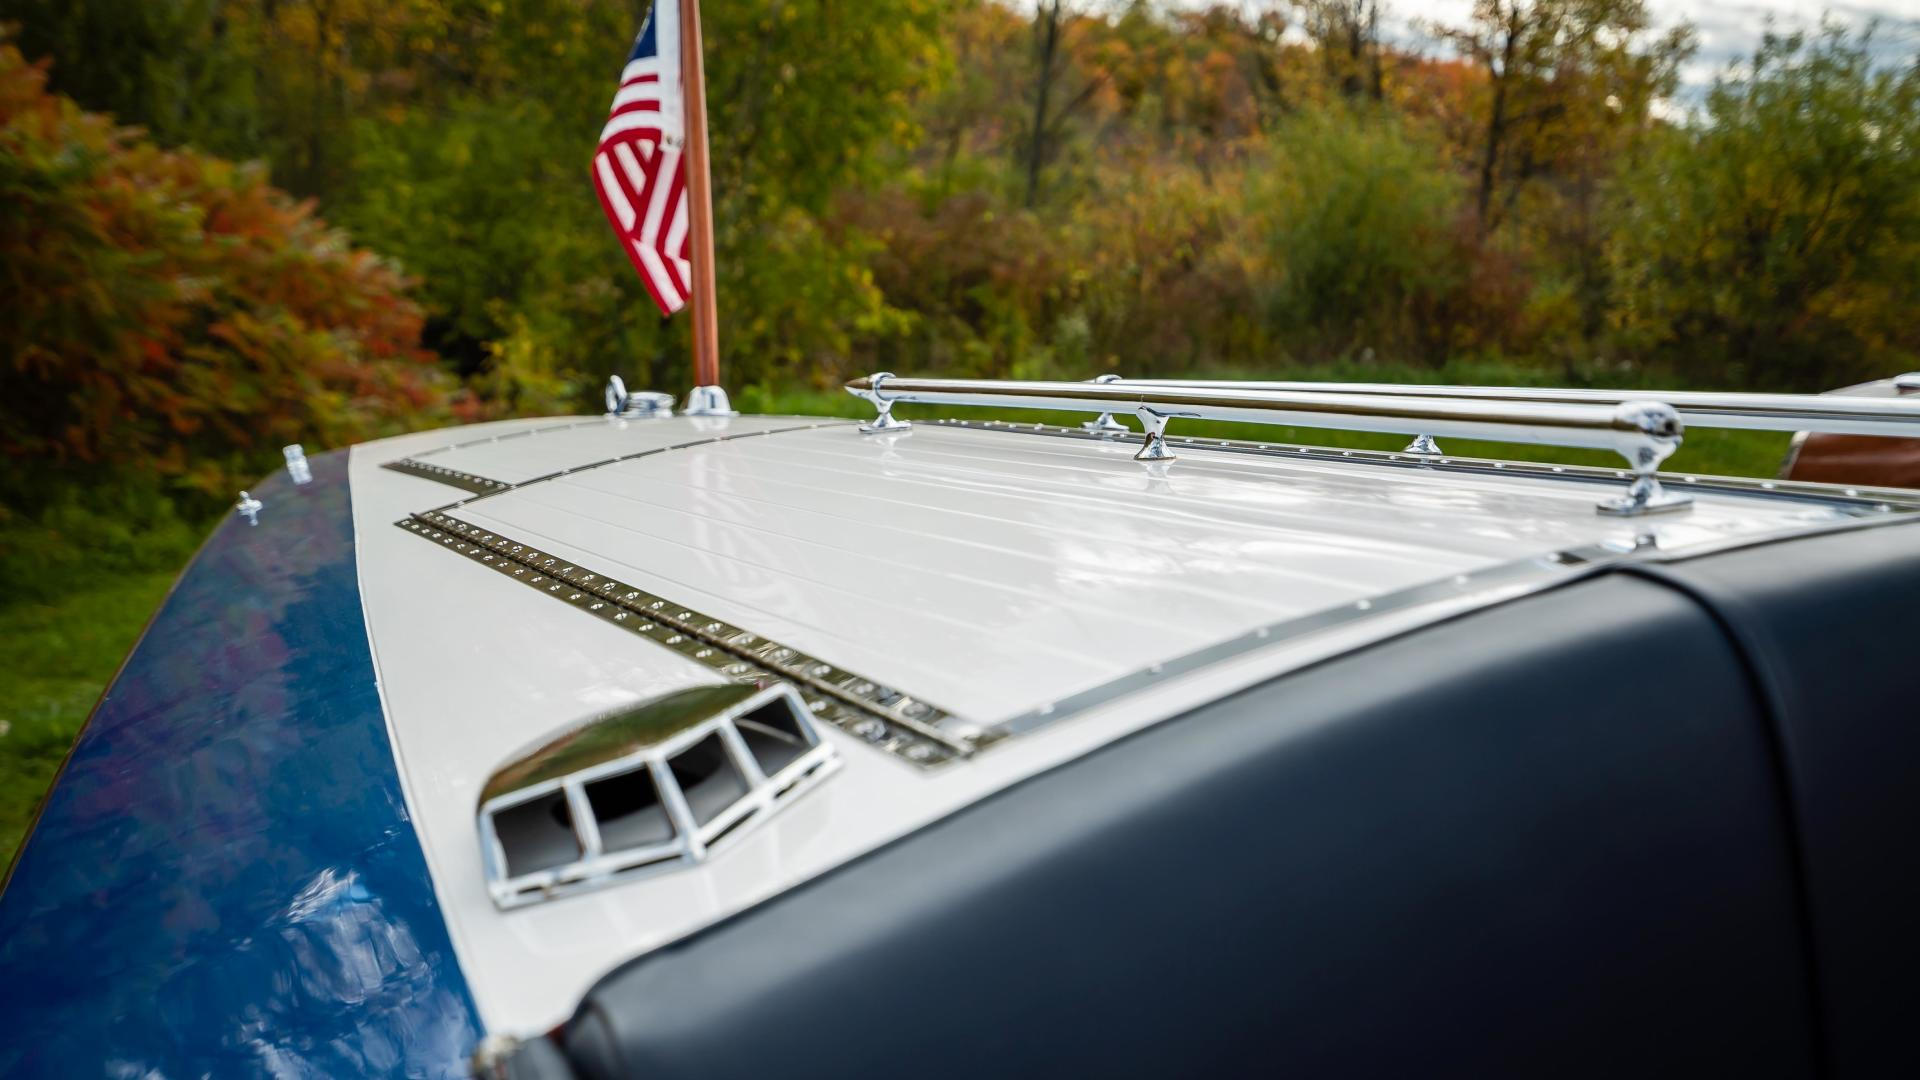 Chris-Craft-Special Race boat 1937 -Clayton-New York-United States-1546457 | Thumbnail